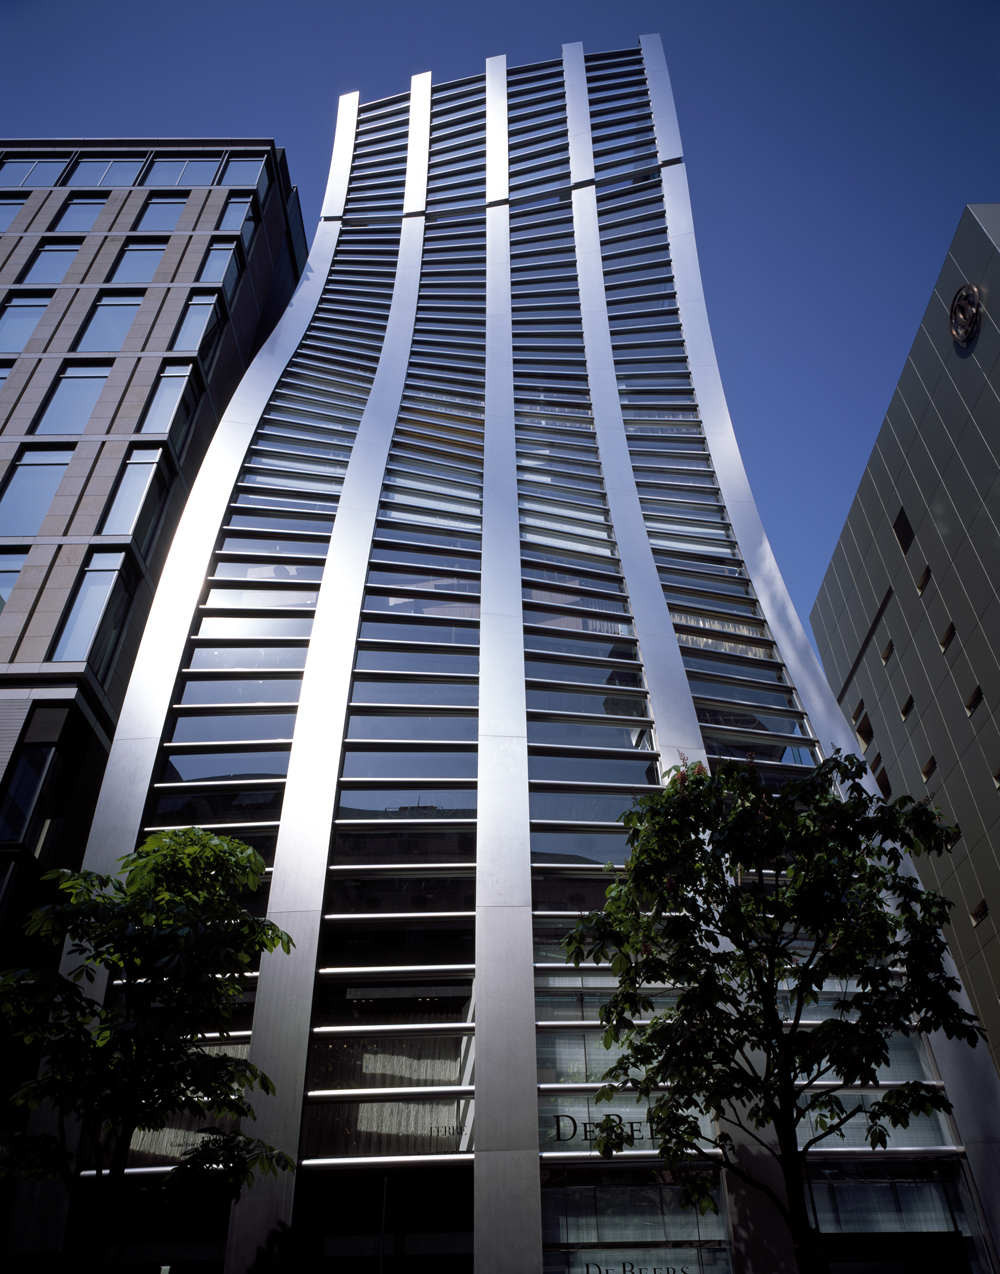 Gallery of de beers ginza building jun mitsui for Architecture tokyo